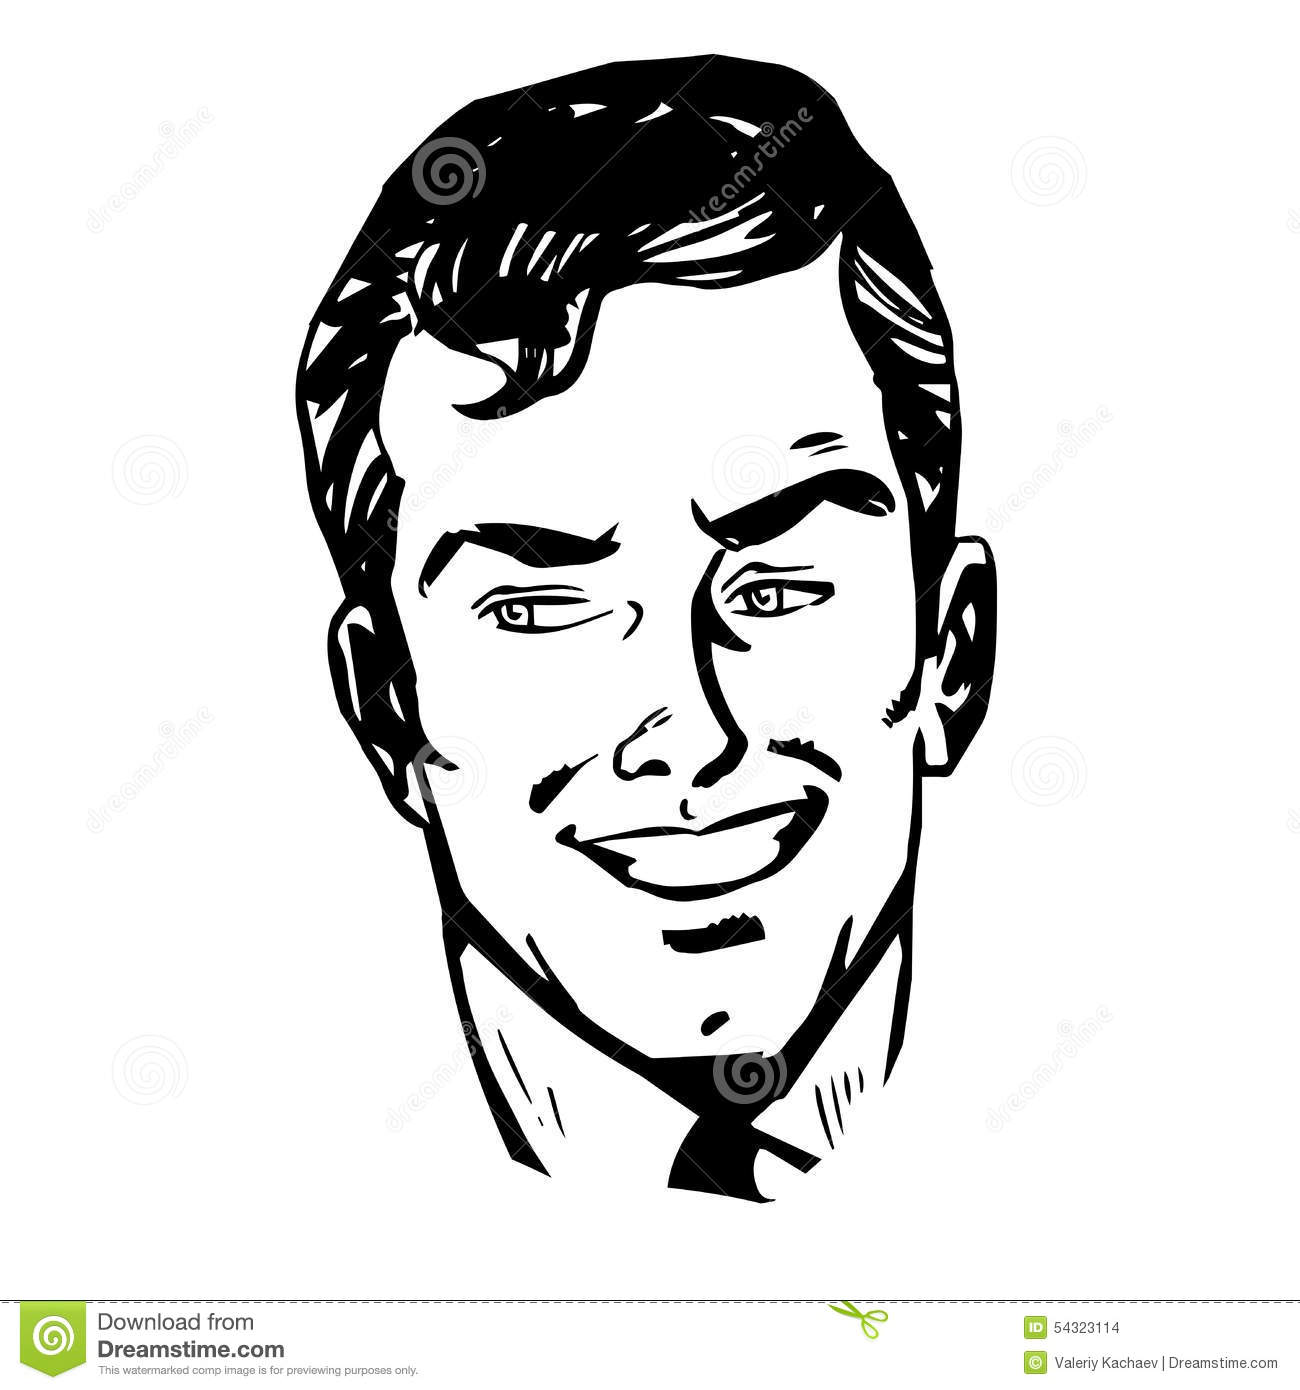 Line Drawing Smiling Face : Smiling man face retro line art stock illustration image